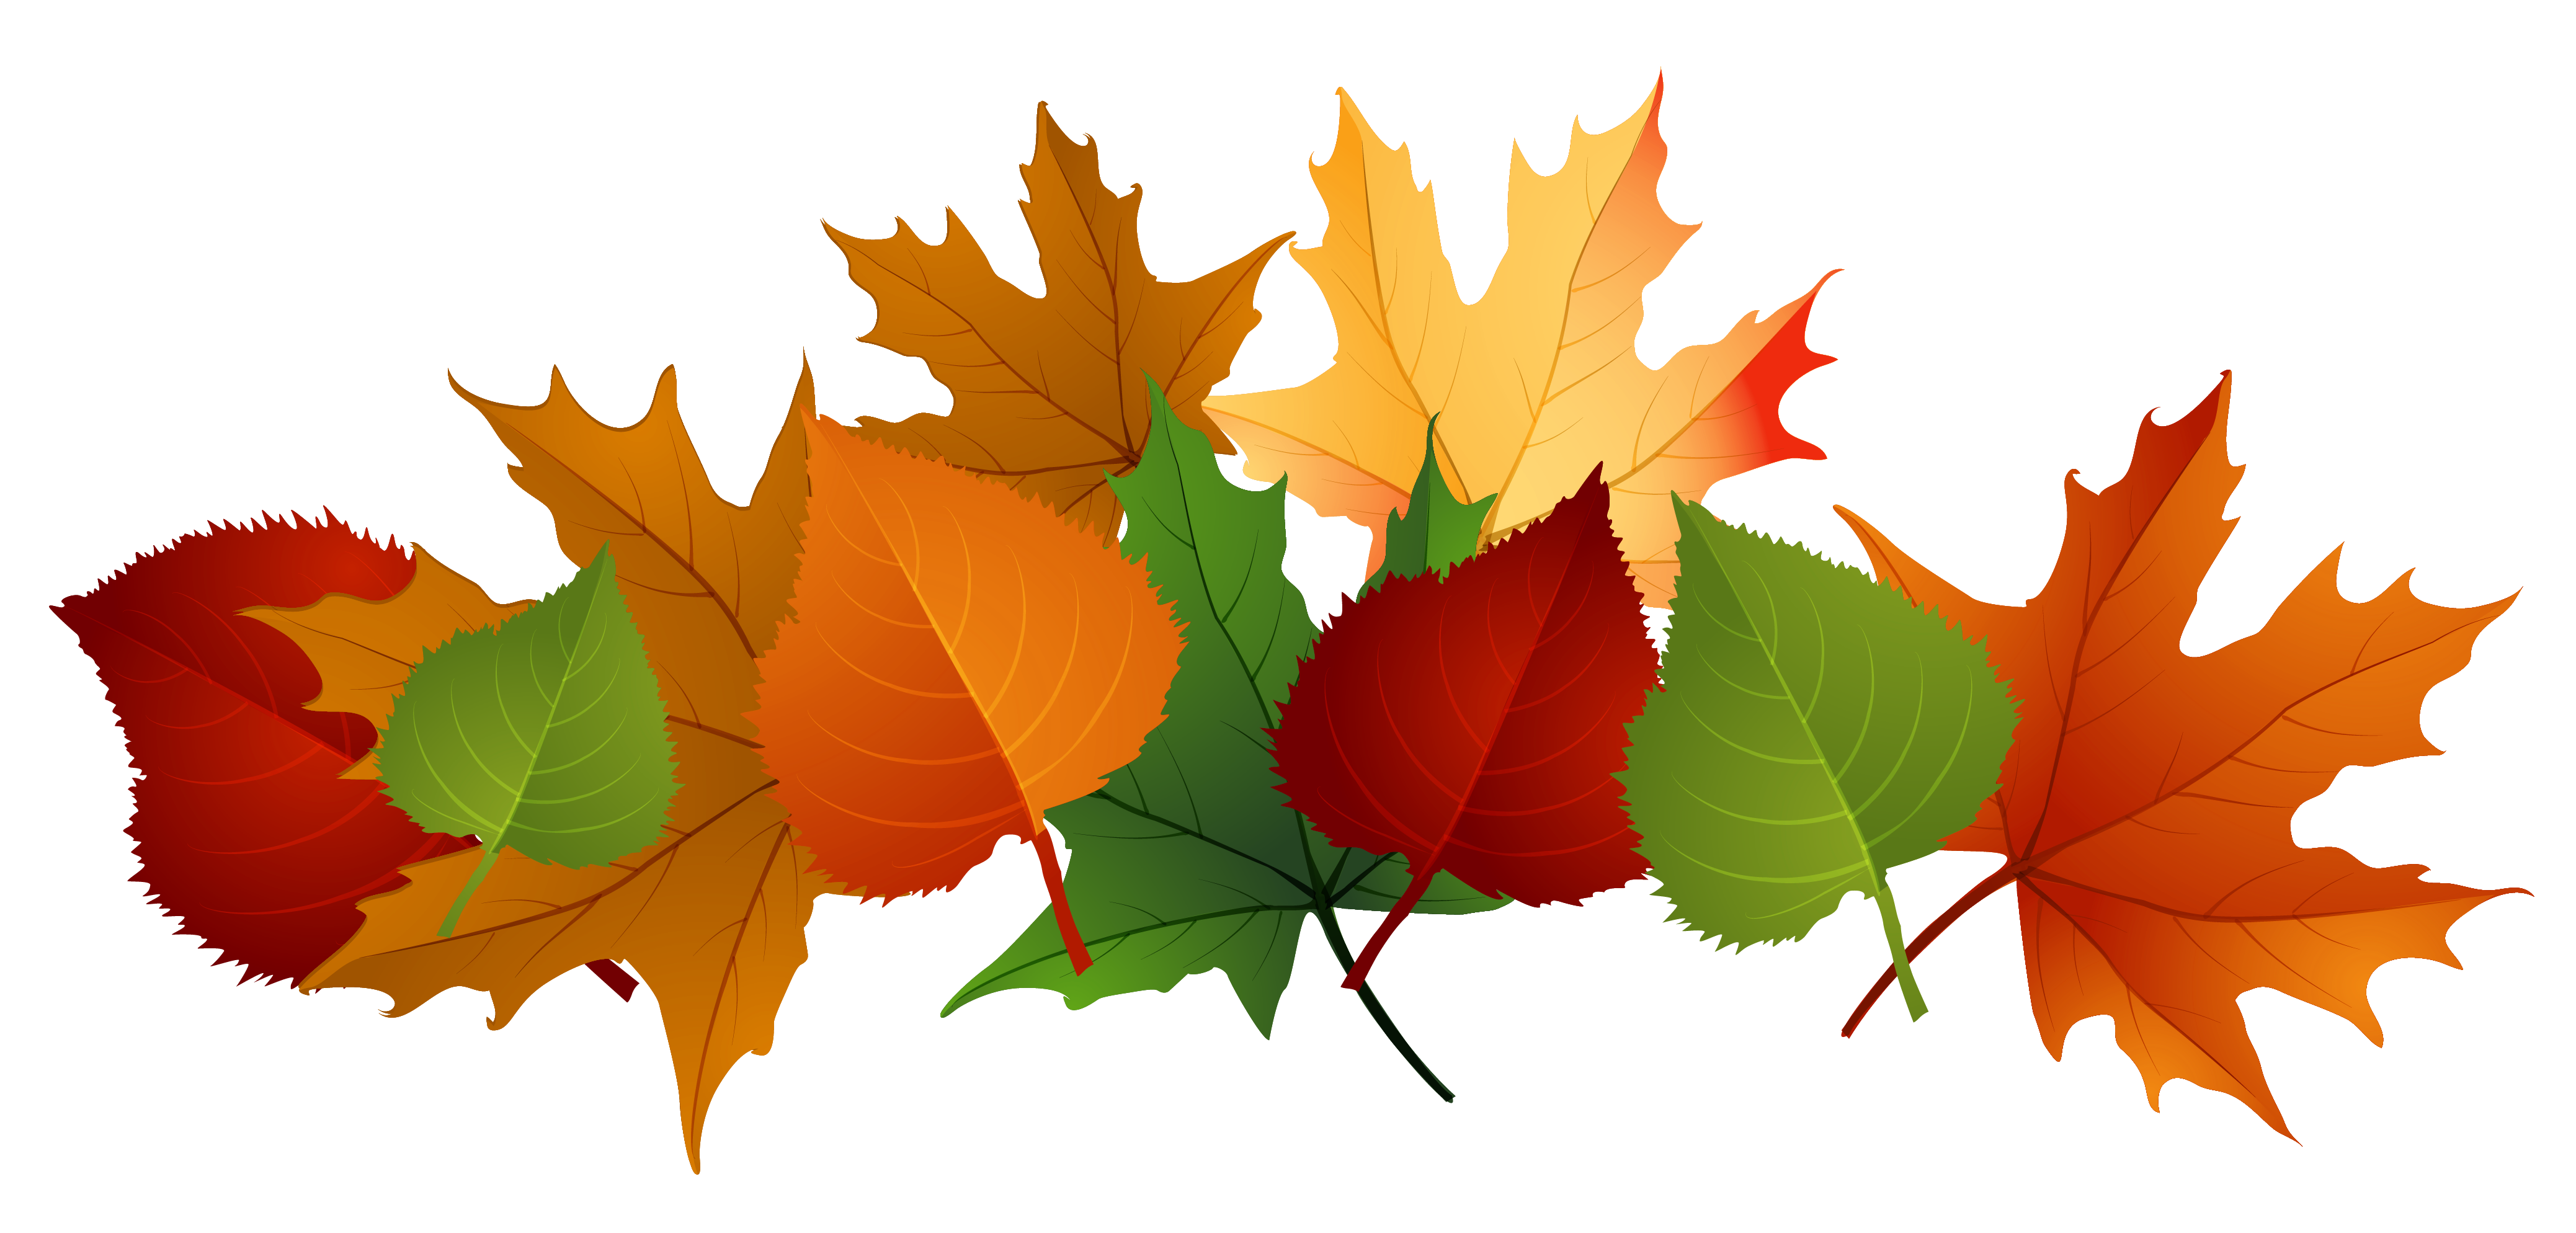 fall and thanksgiving clipart at getdrawings com free for personal rh getdrawings com thanksgiving border clipart free